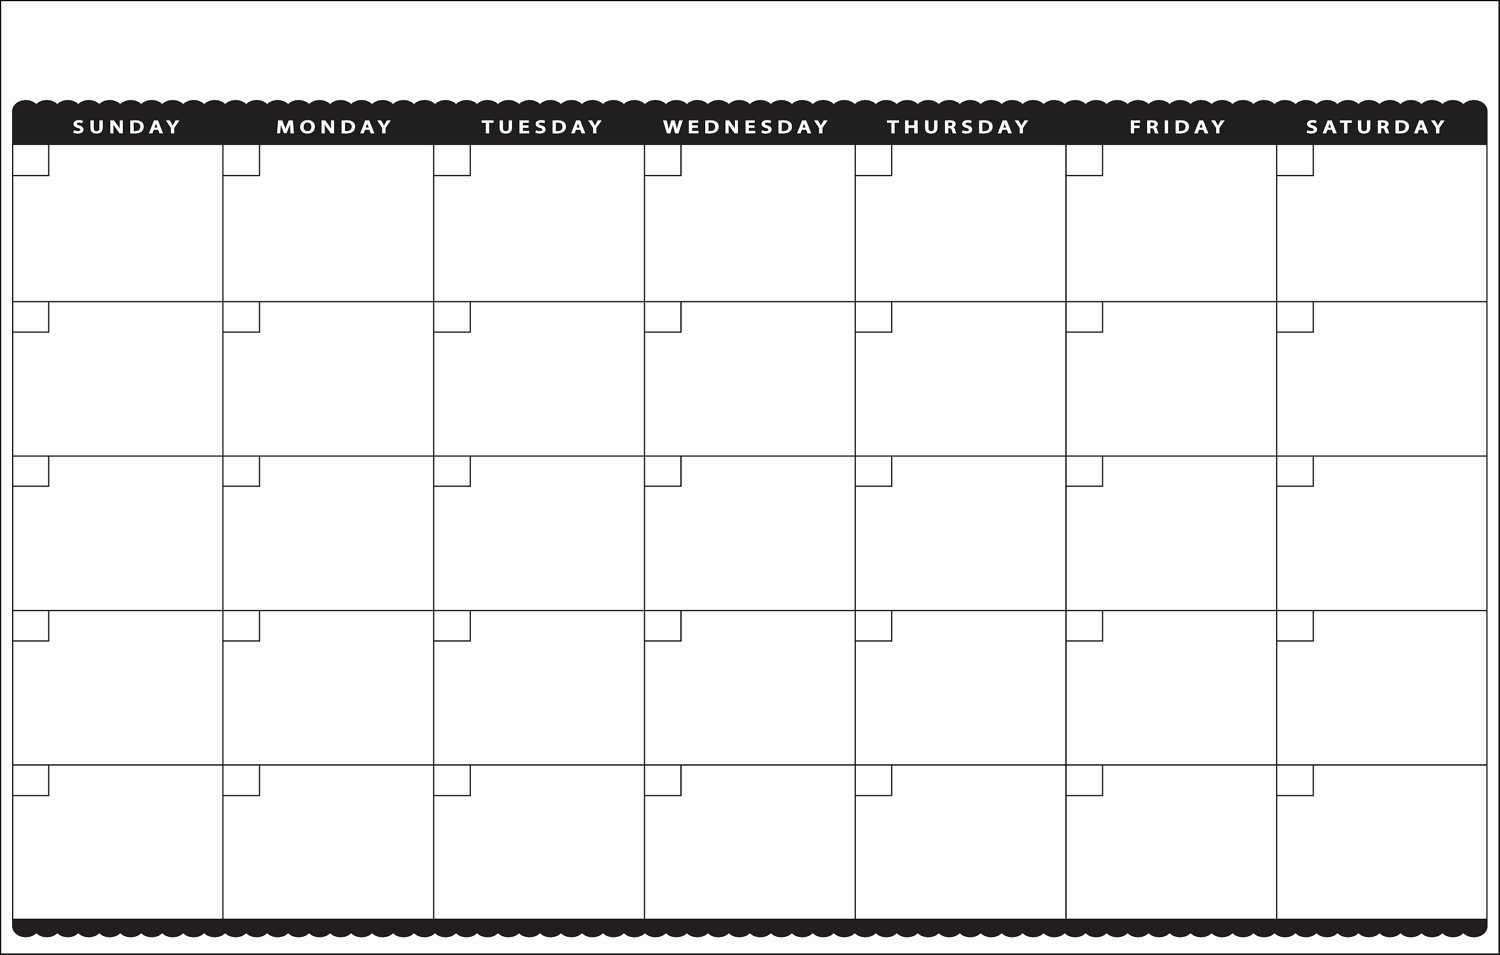 Blank Monthly Calendar Template | Simple Template Design inside Cute Blank Monthly Calendar Template